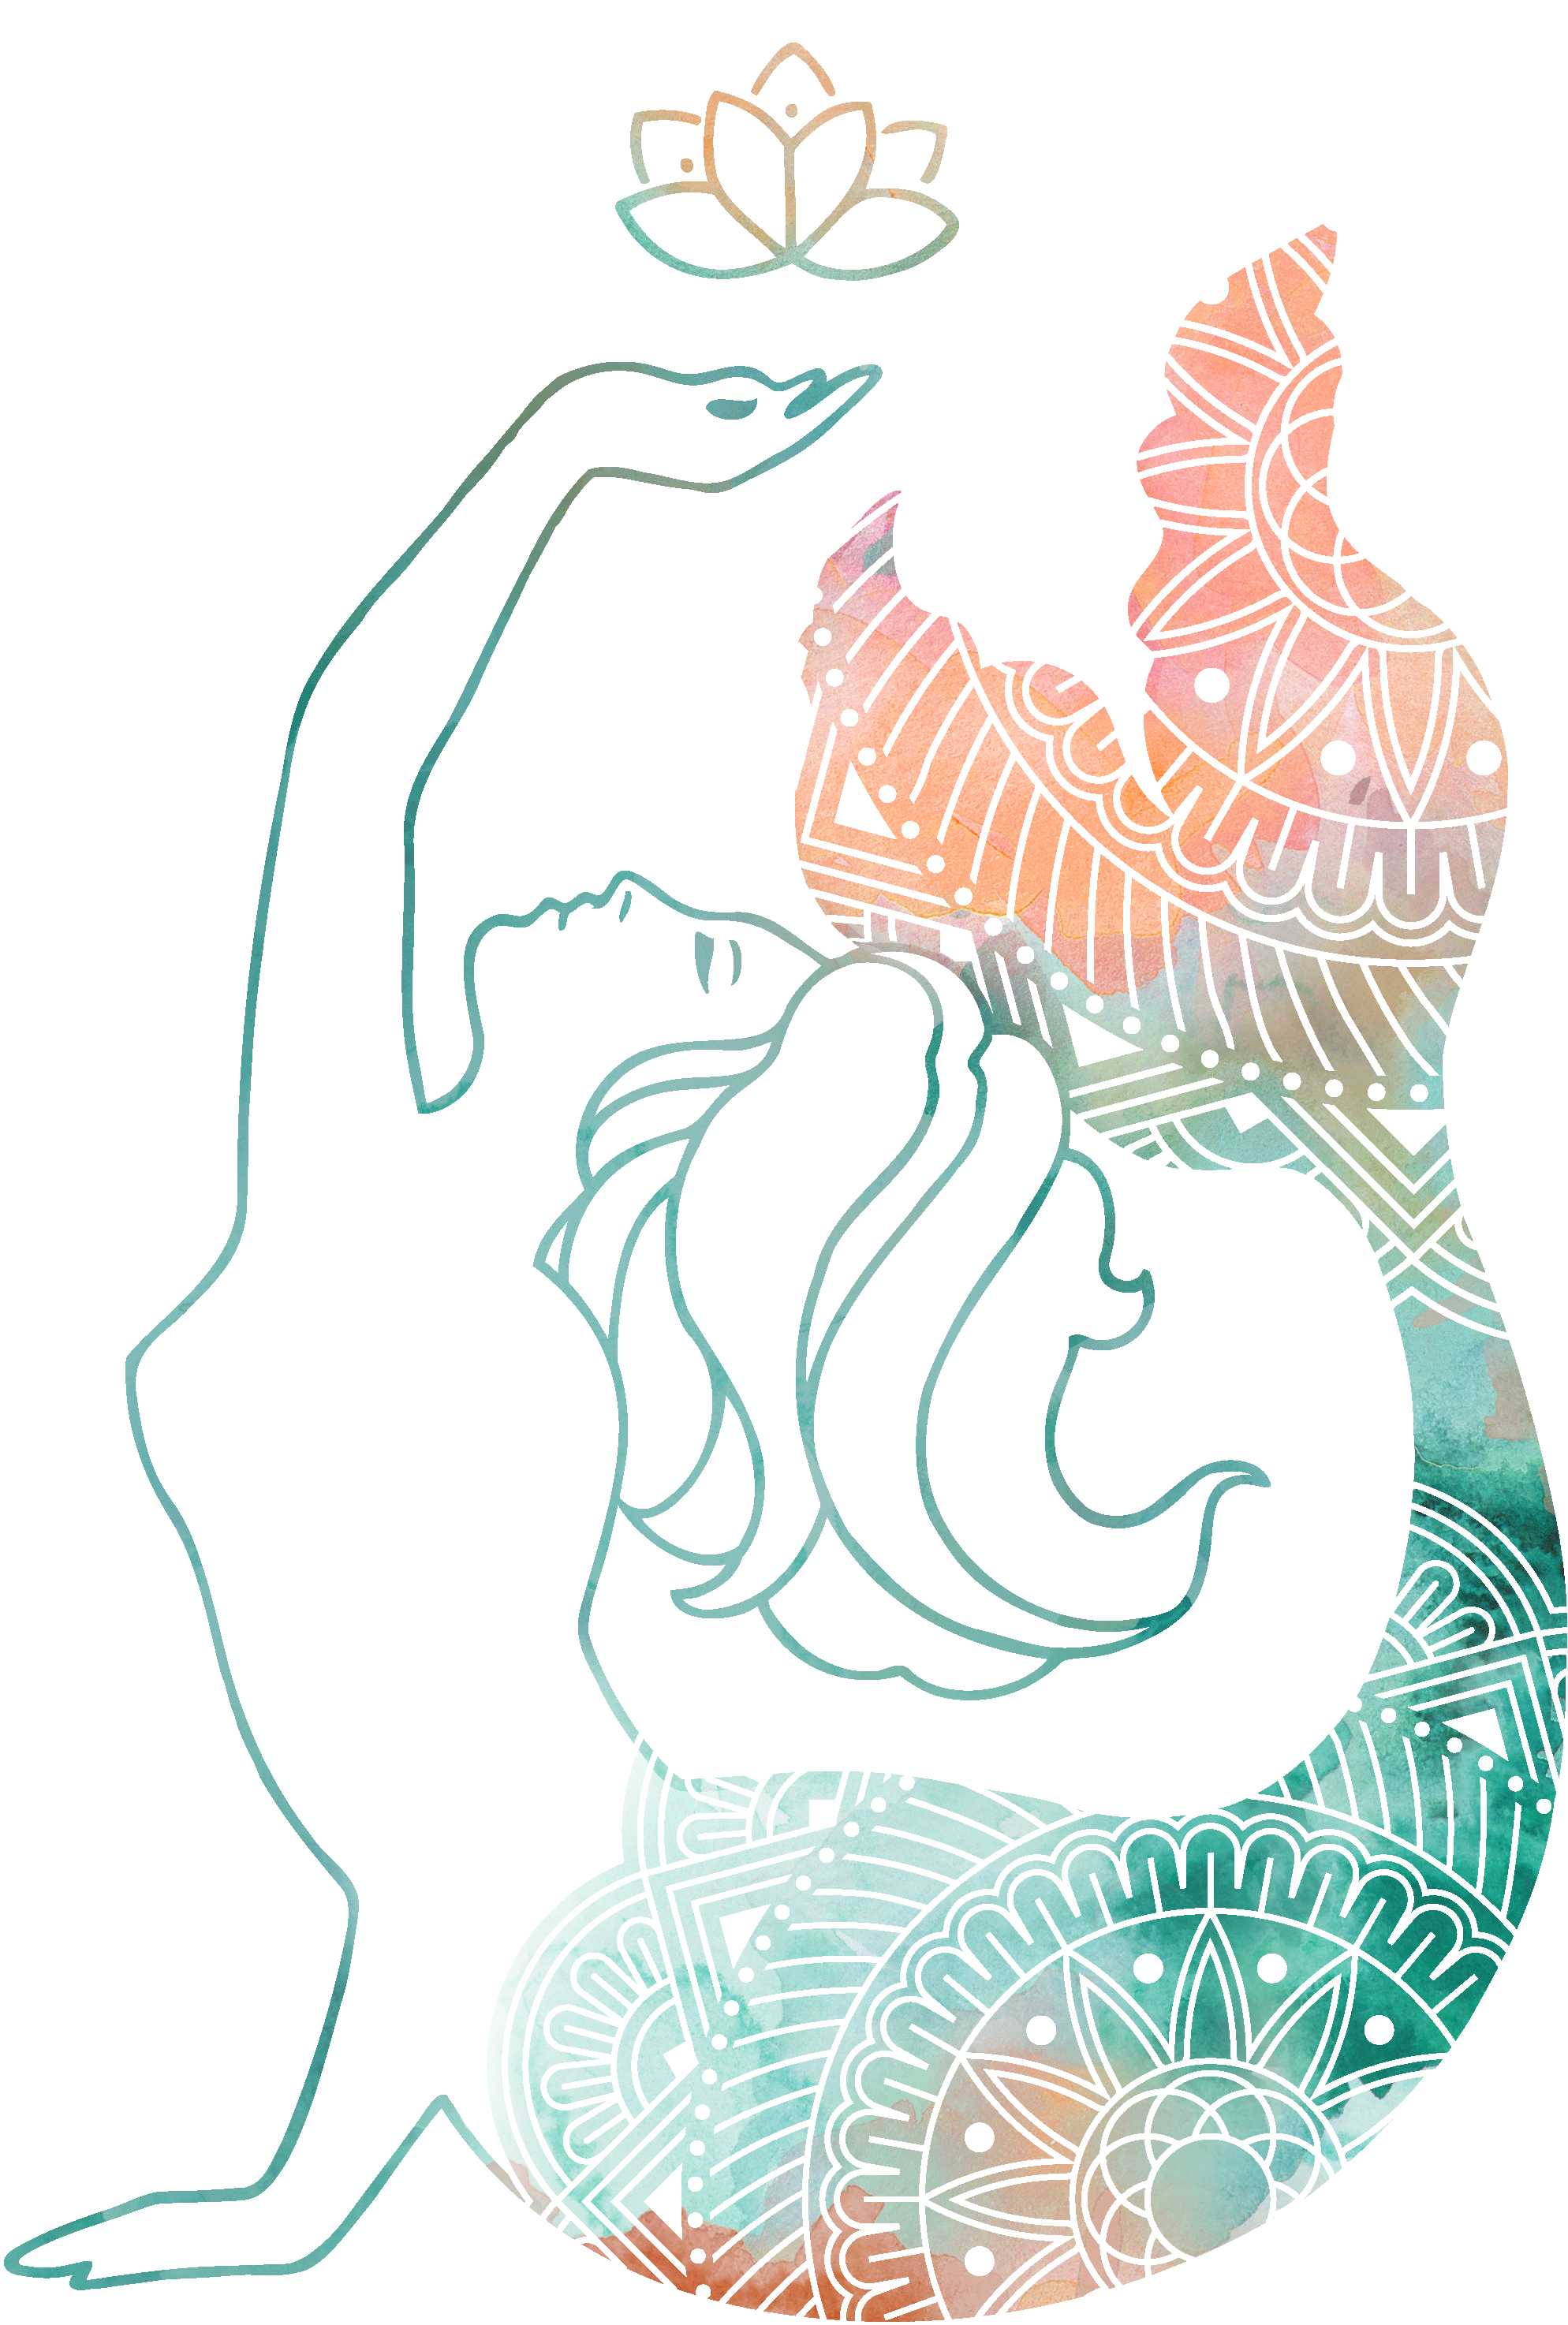 SirenYoga_Large High Quality Mermaid_Transparent Background.png